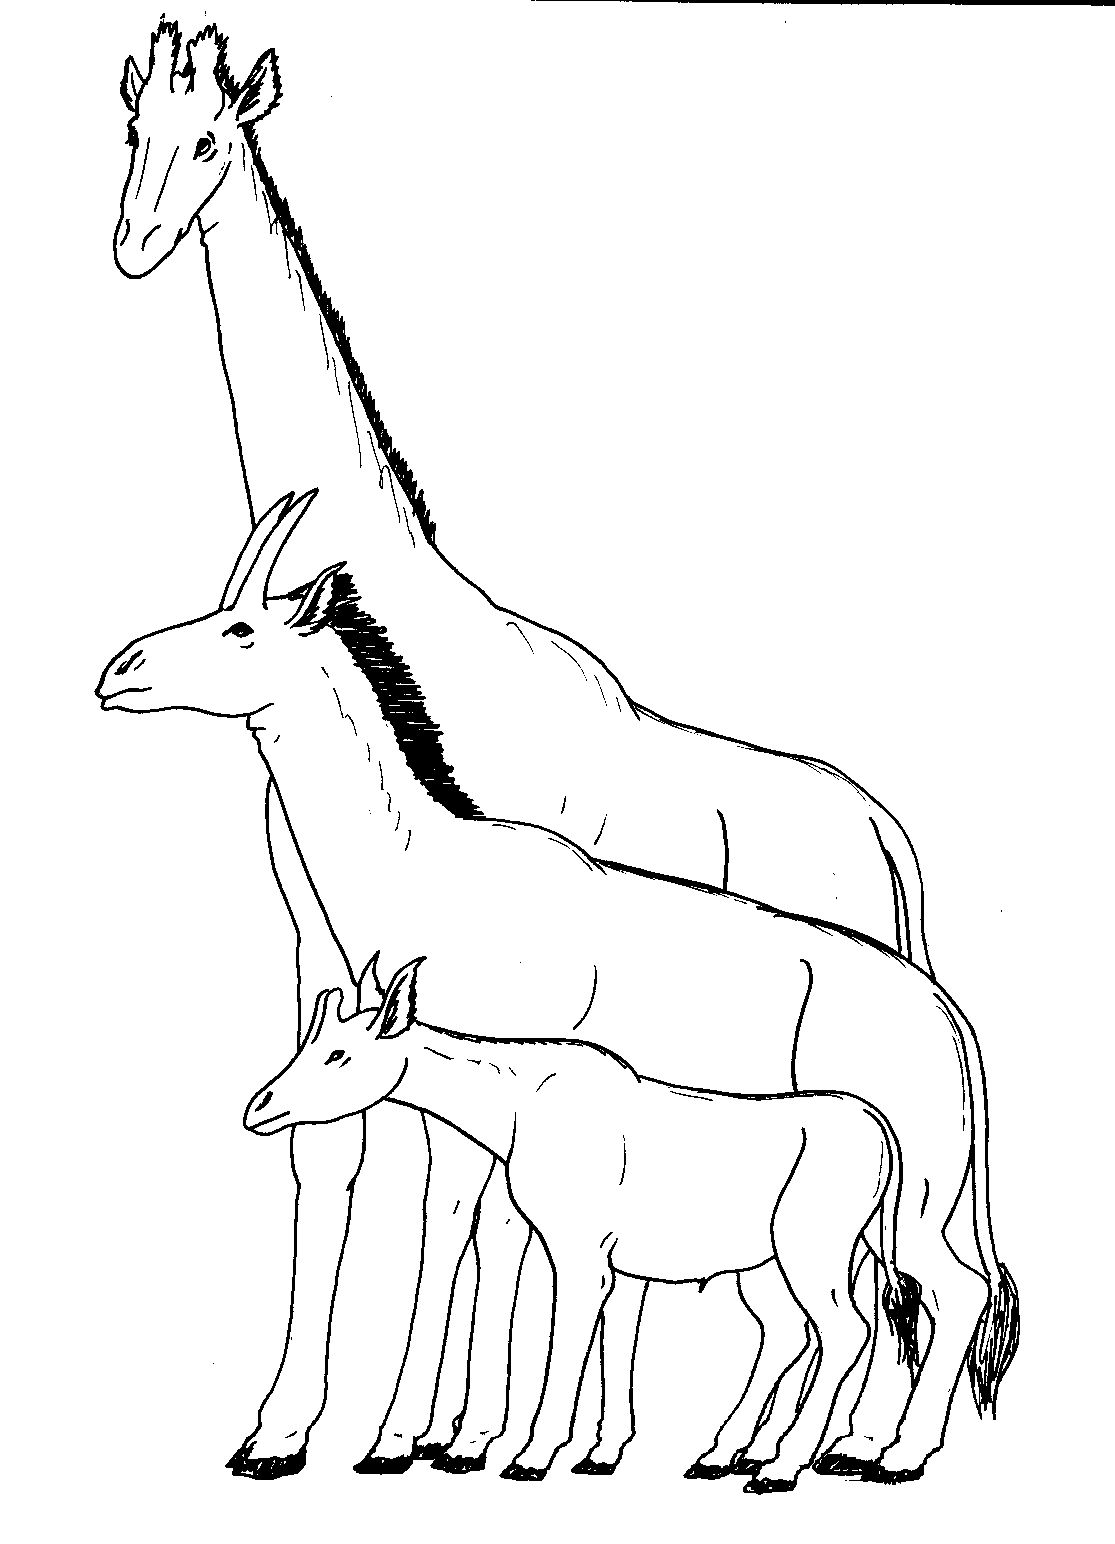 The extinct giraffid Samotherium (middle) in comparison with the okapi (below) and giraffe. The anatomy of Samotherium appears to have shown a transition to a giraffe-like neck.